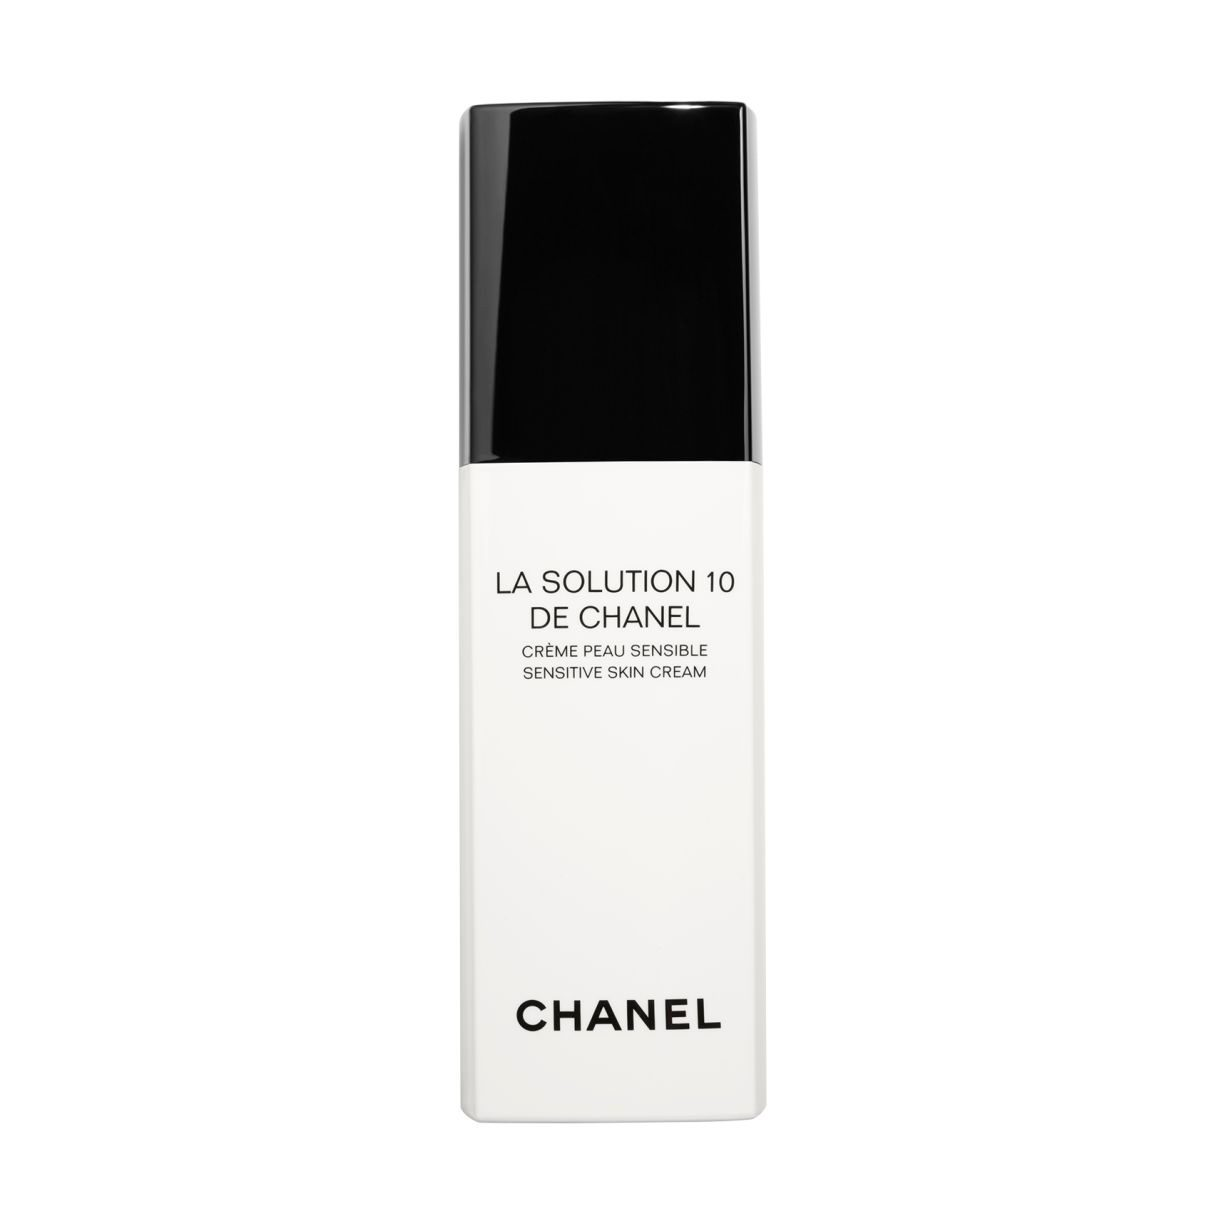 LA SOLUTION 10 DE CHANEL CREME PARA PELES SENSÍVEIS 30ml